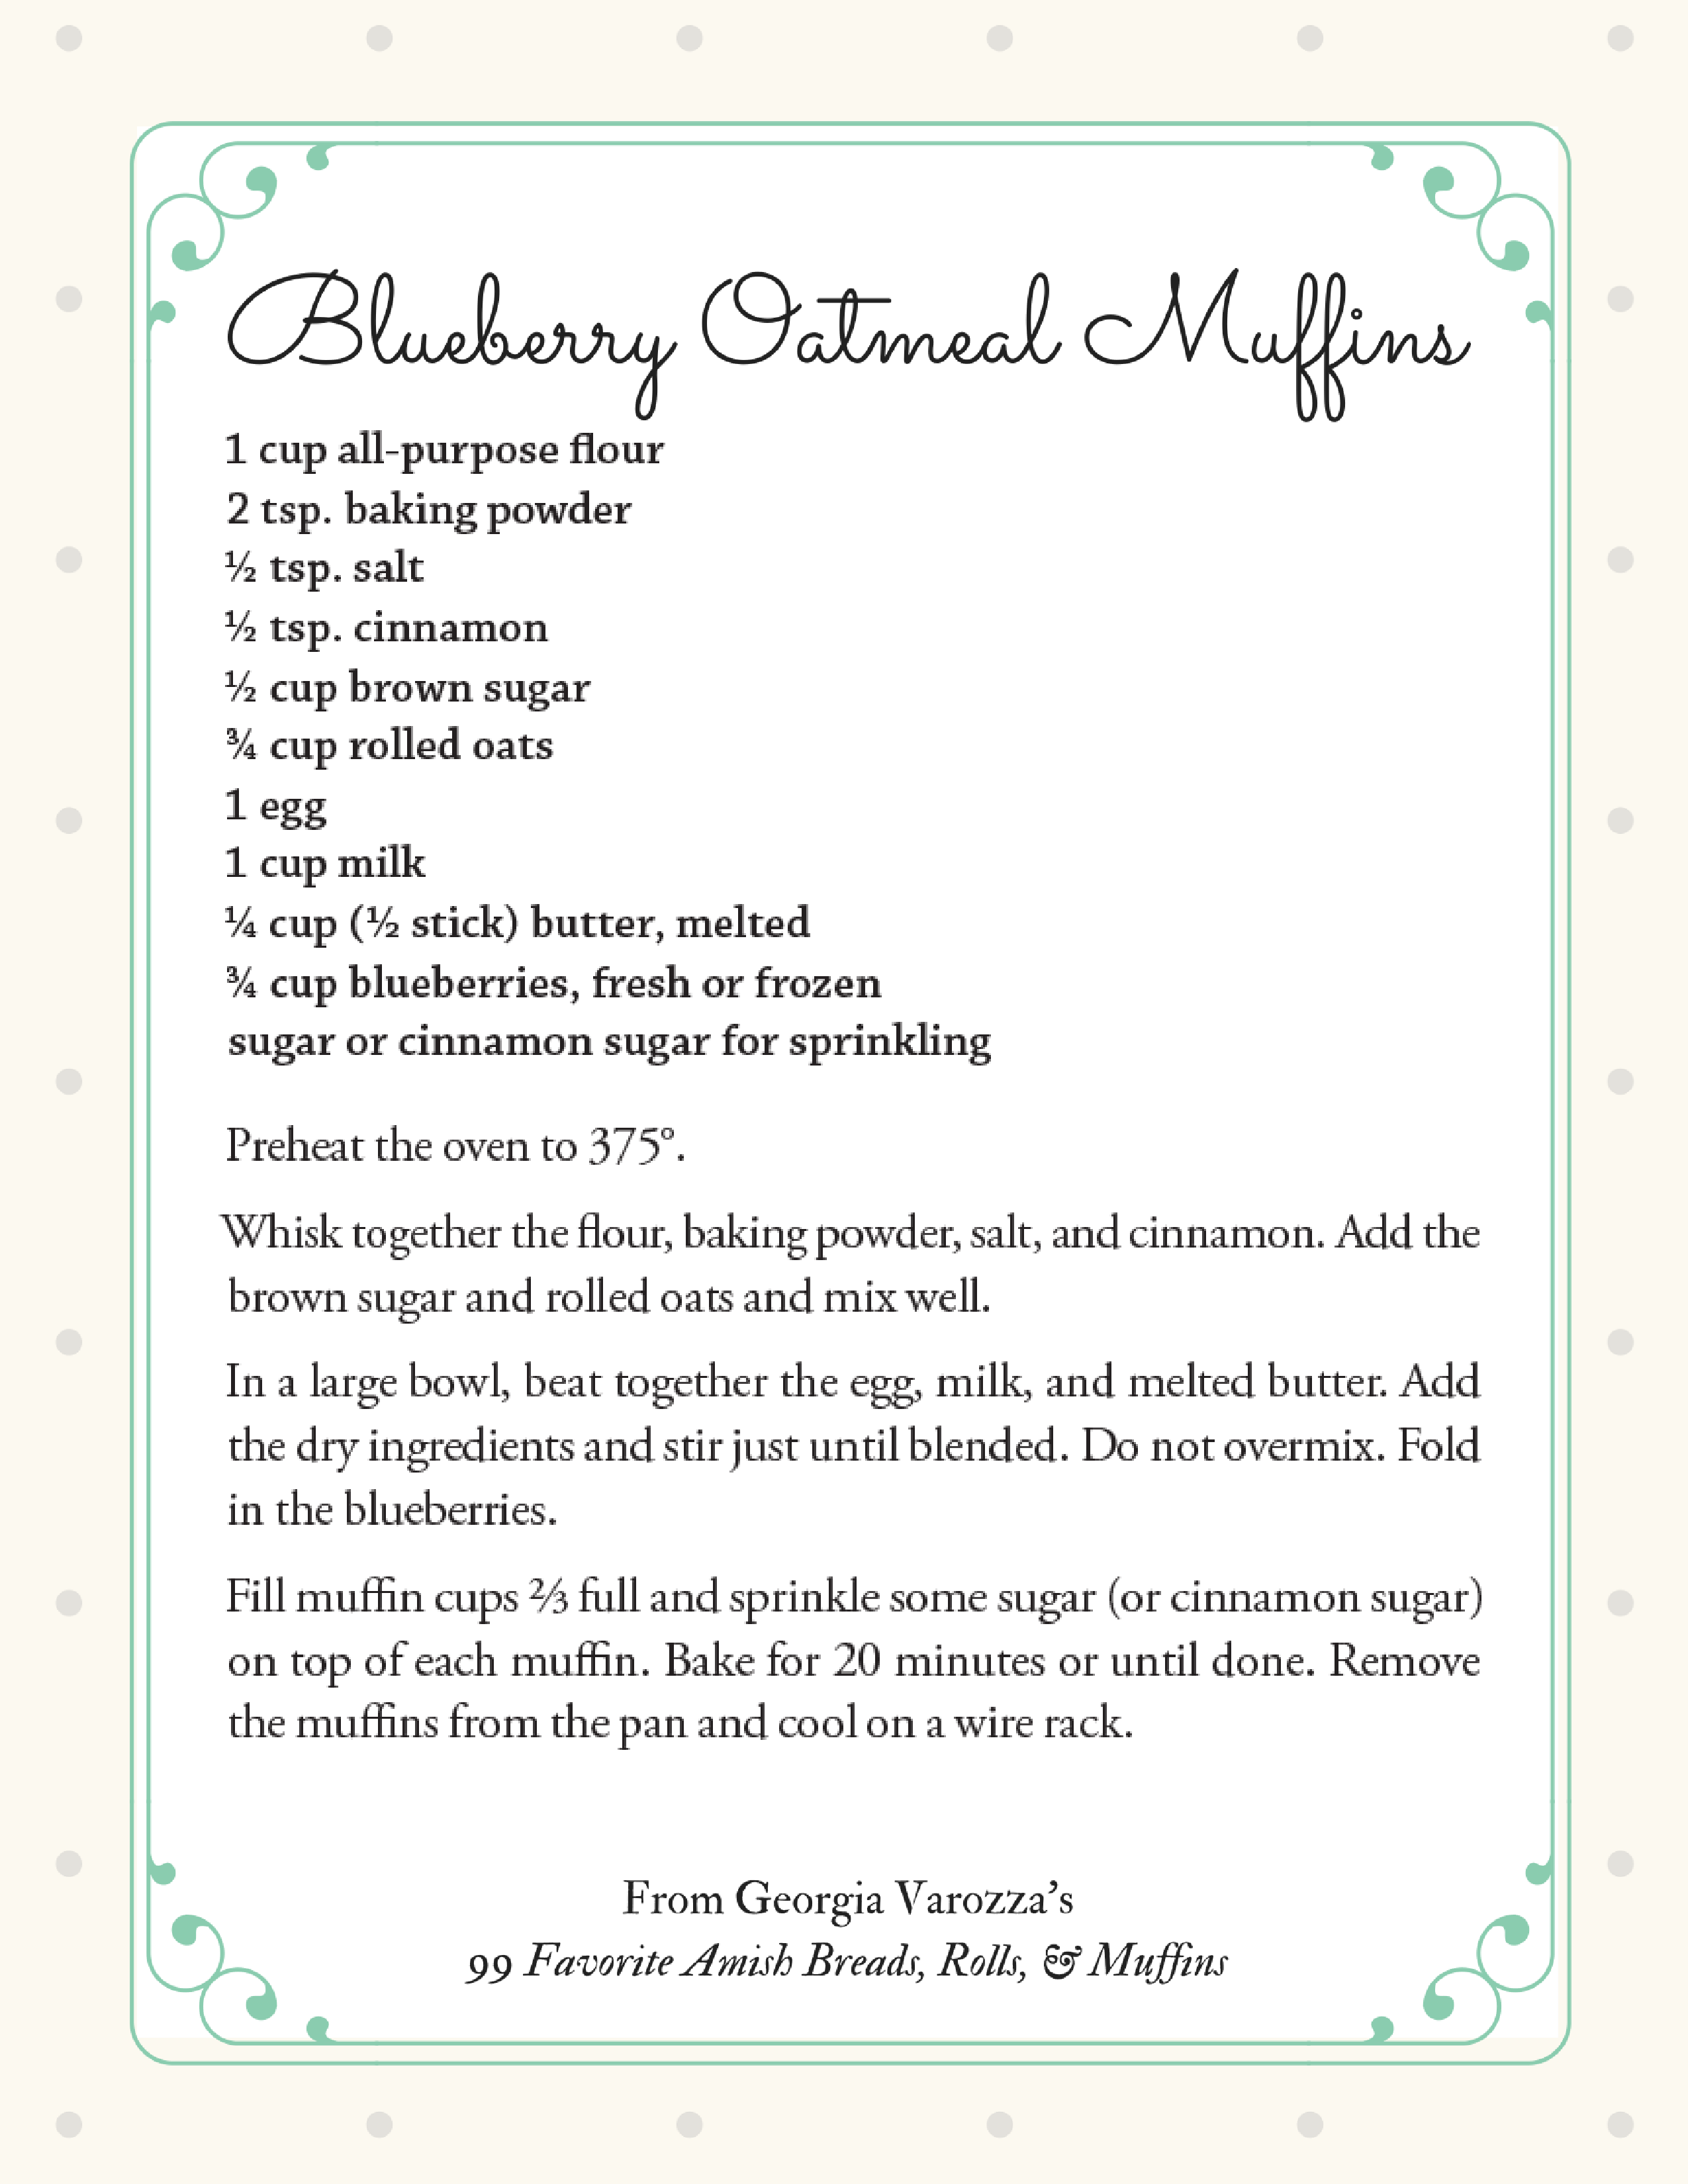 blueberry-oatmeal-muffins